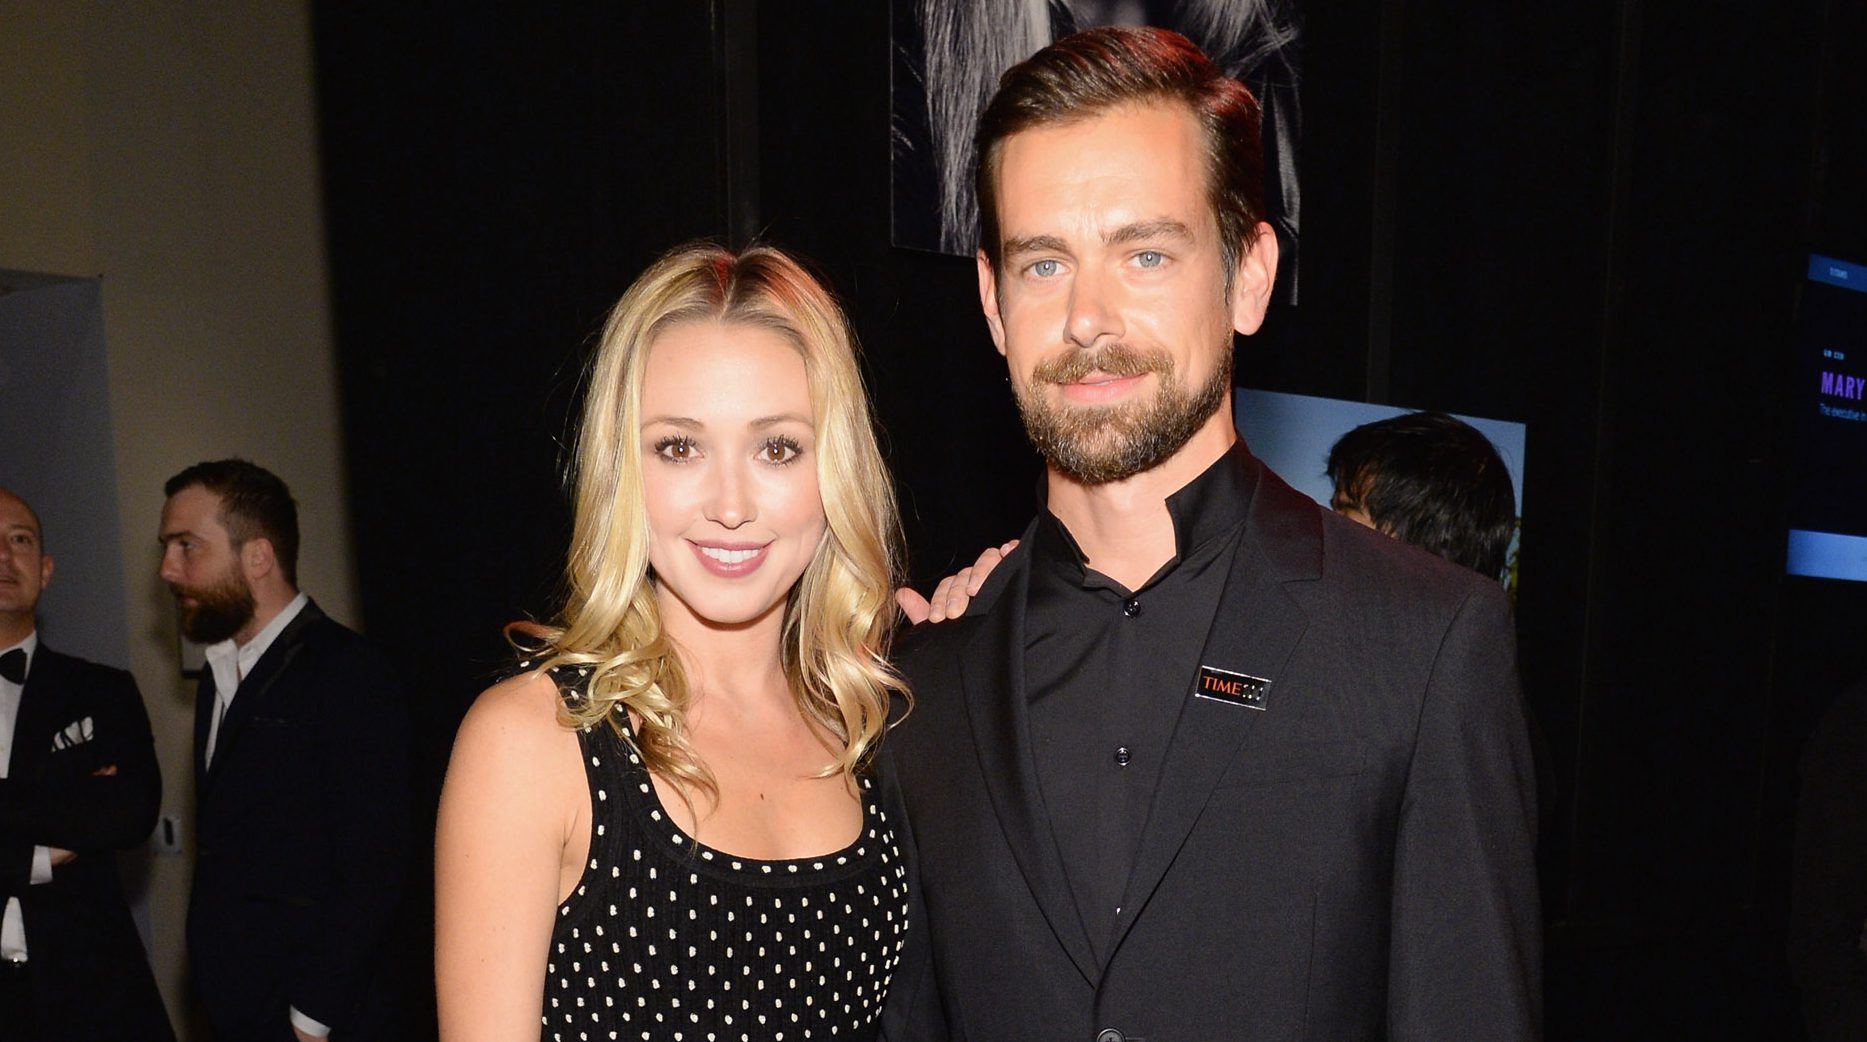 Kate Greer Jack Dorsey S Girlfriend 5 Fast Facts Heavy Com